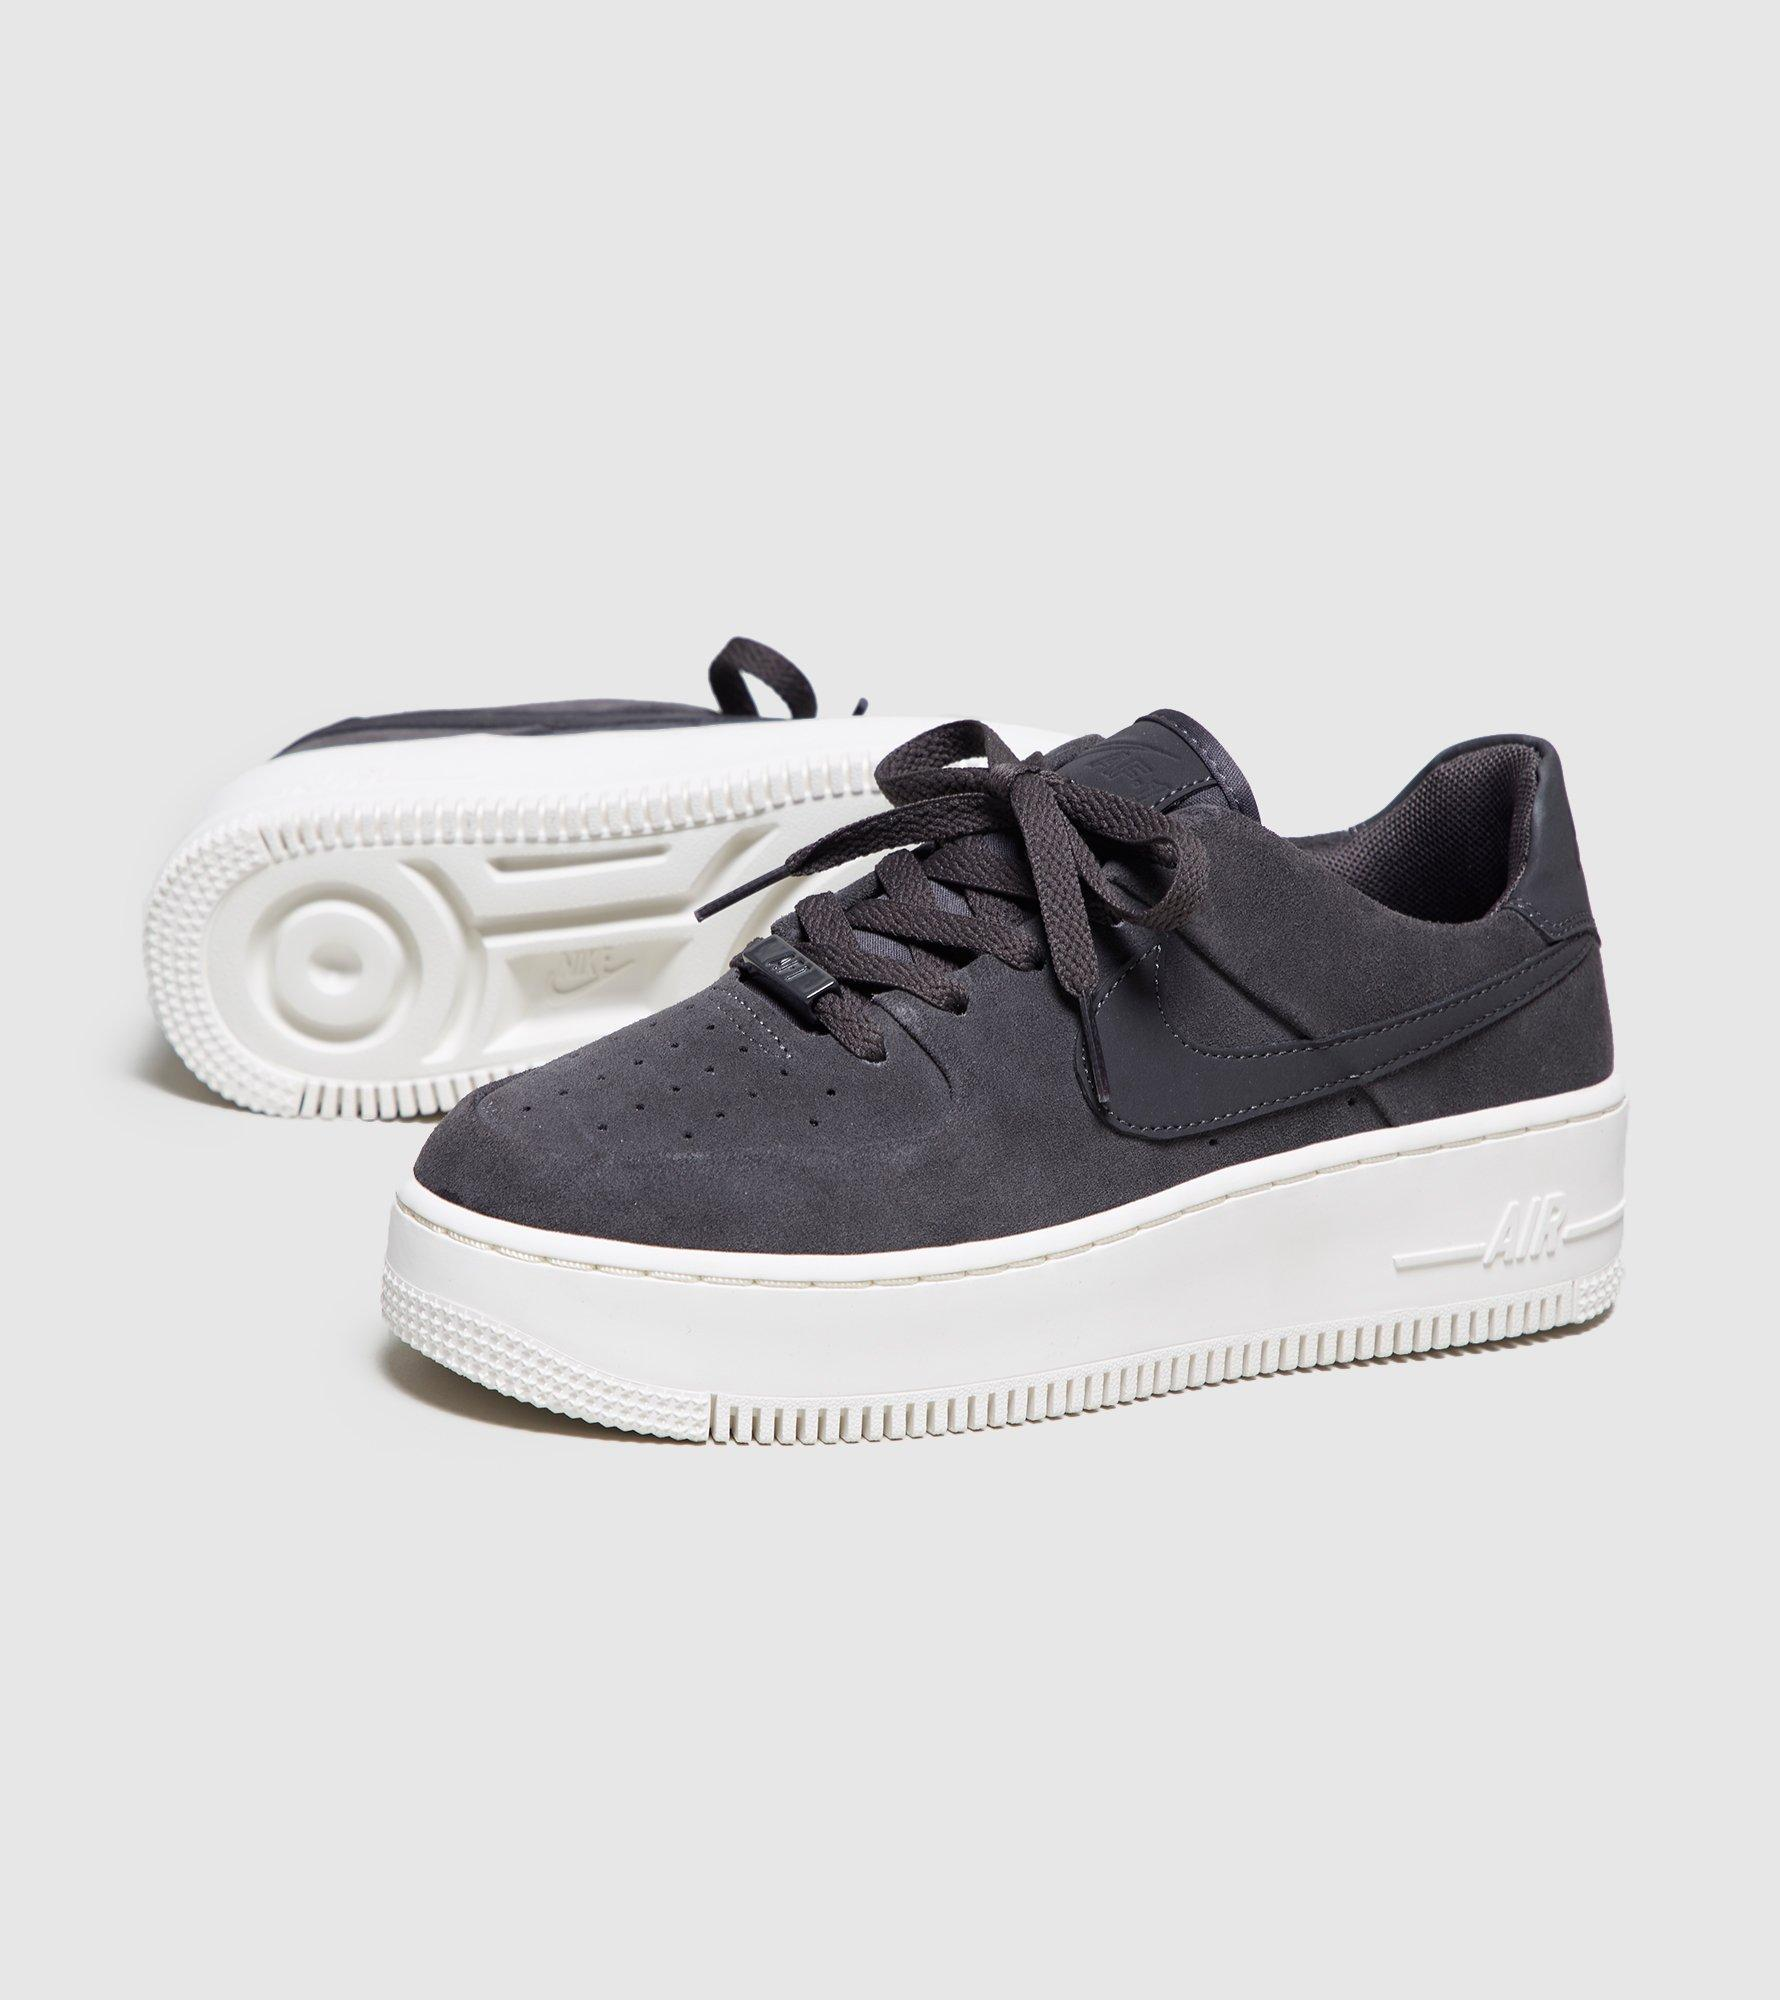 b96af42032e7 Nike Air Force 1 Sage Low Women s in Gray - Lyst